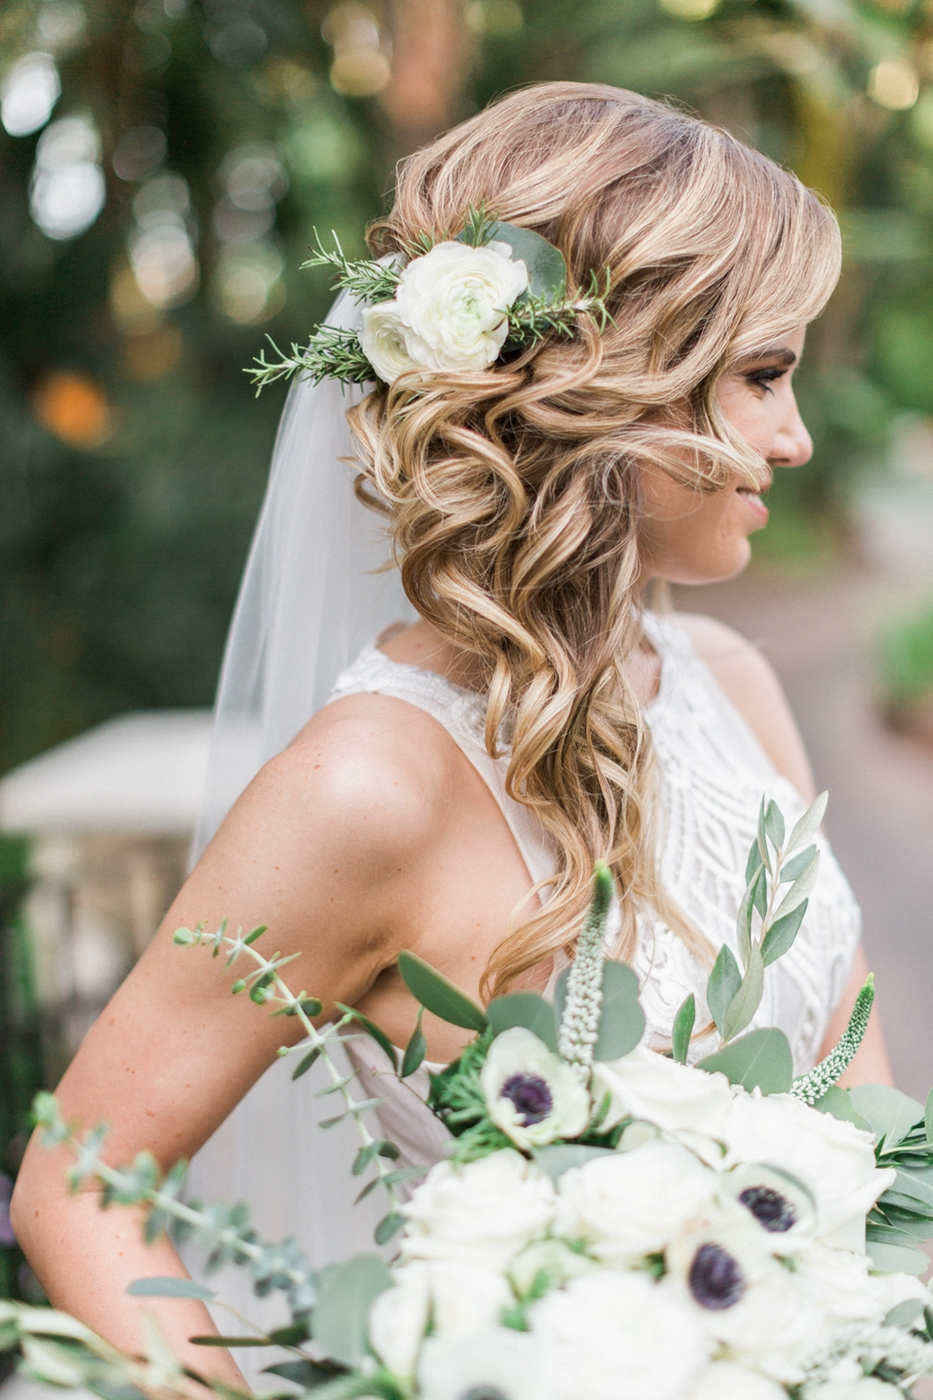 curled faux braided hairstyle on bride with flowers